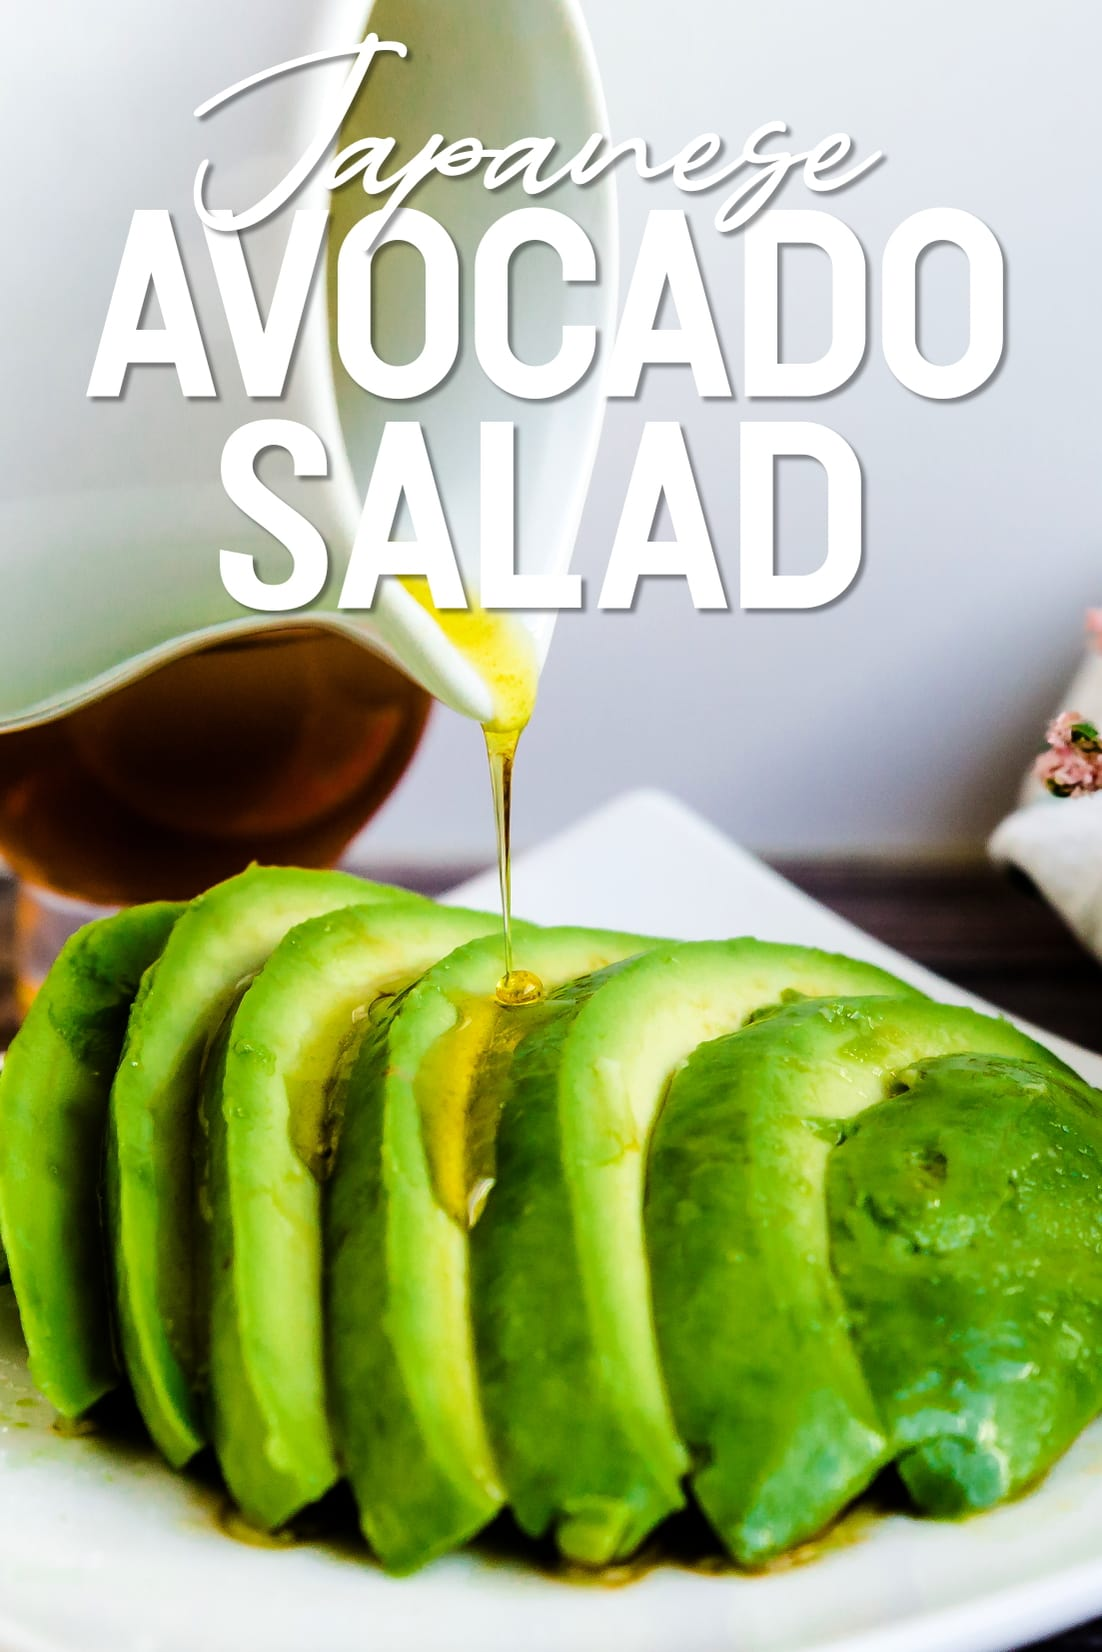 Japanese Avocado Salad with dressing being poured on